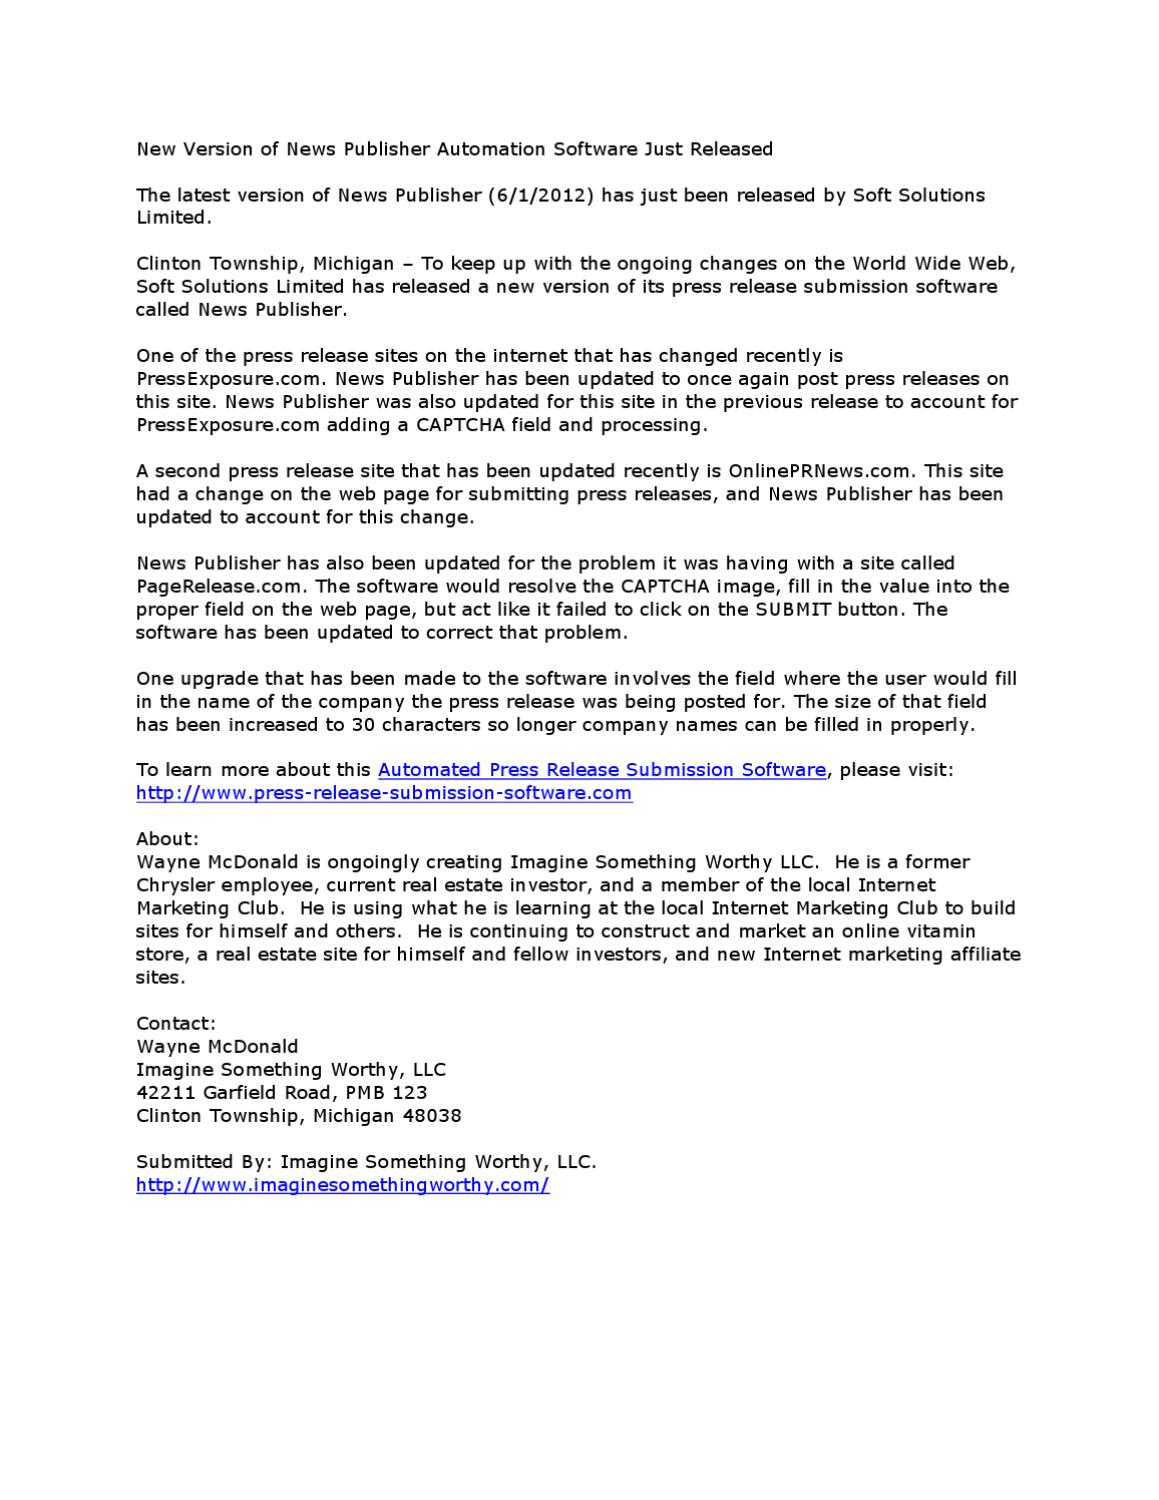 Press Release Submission Software by Wayne McDonald - issuu